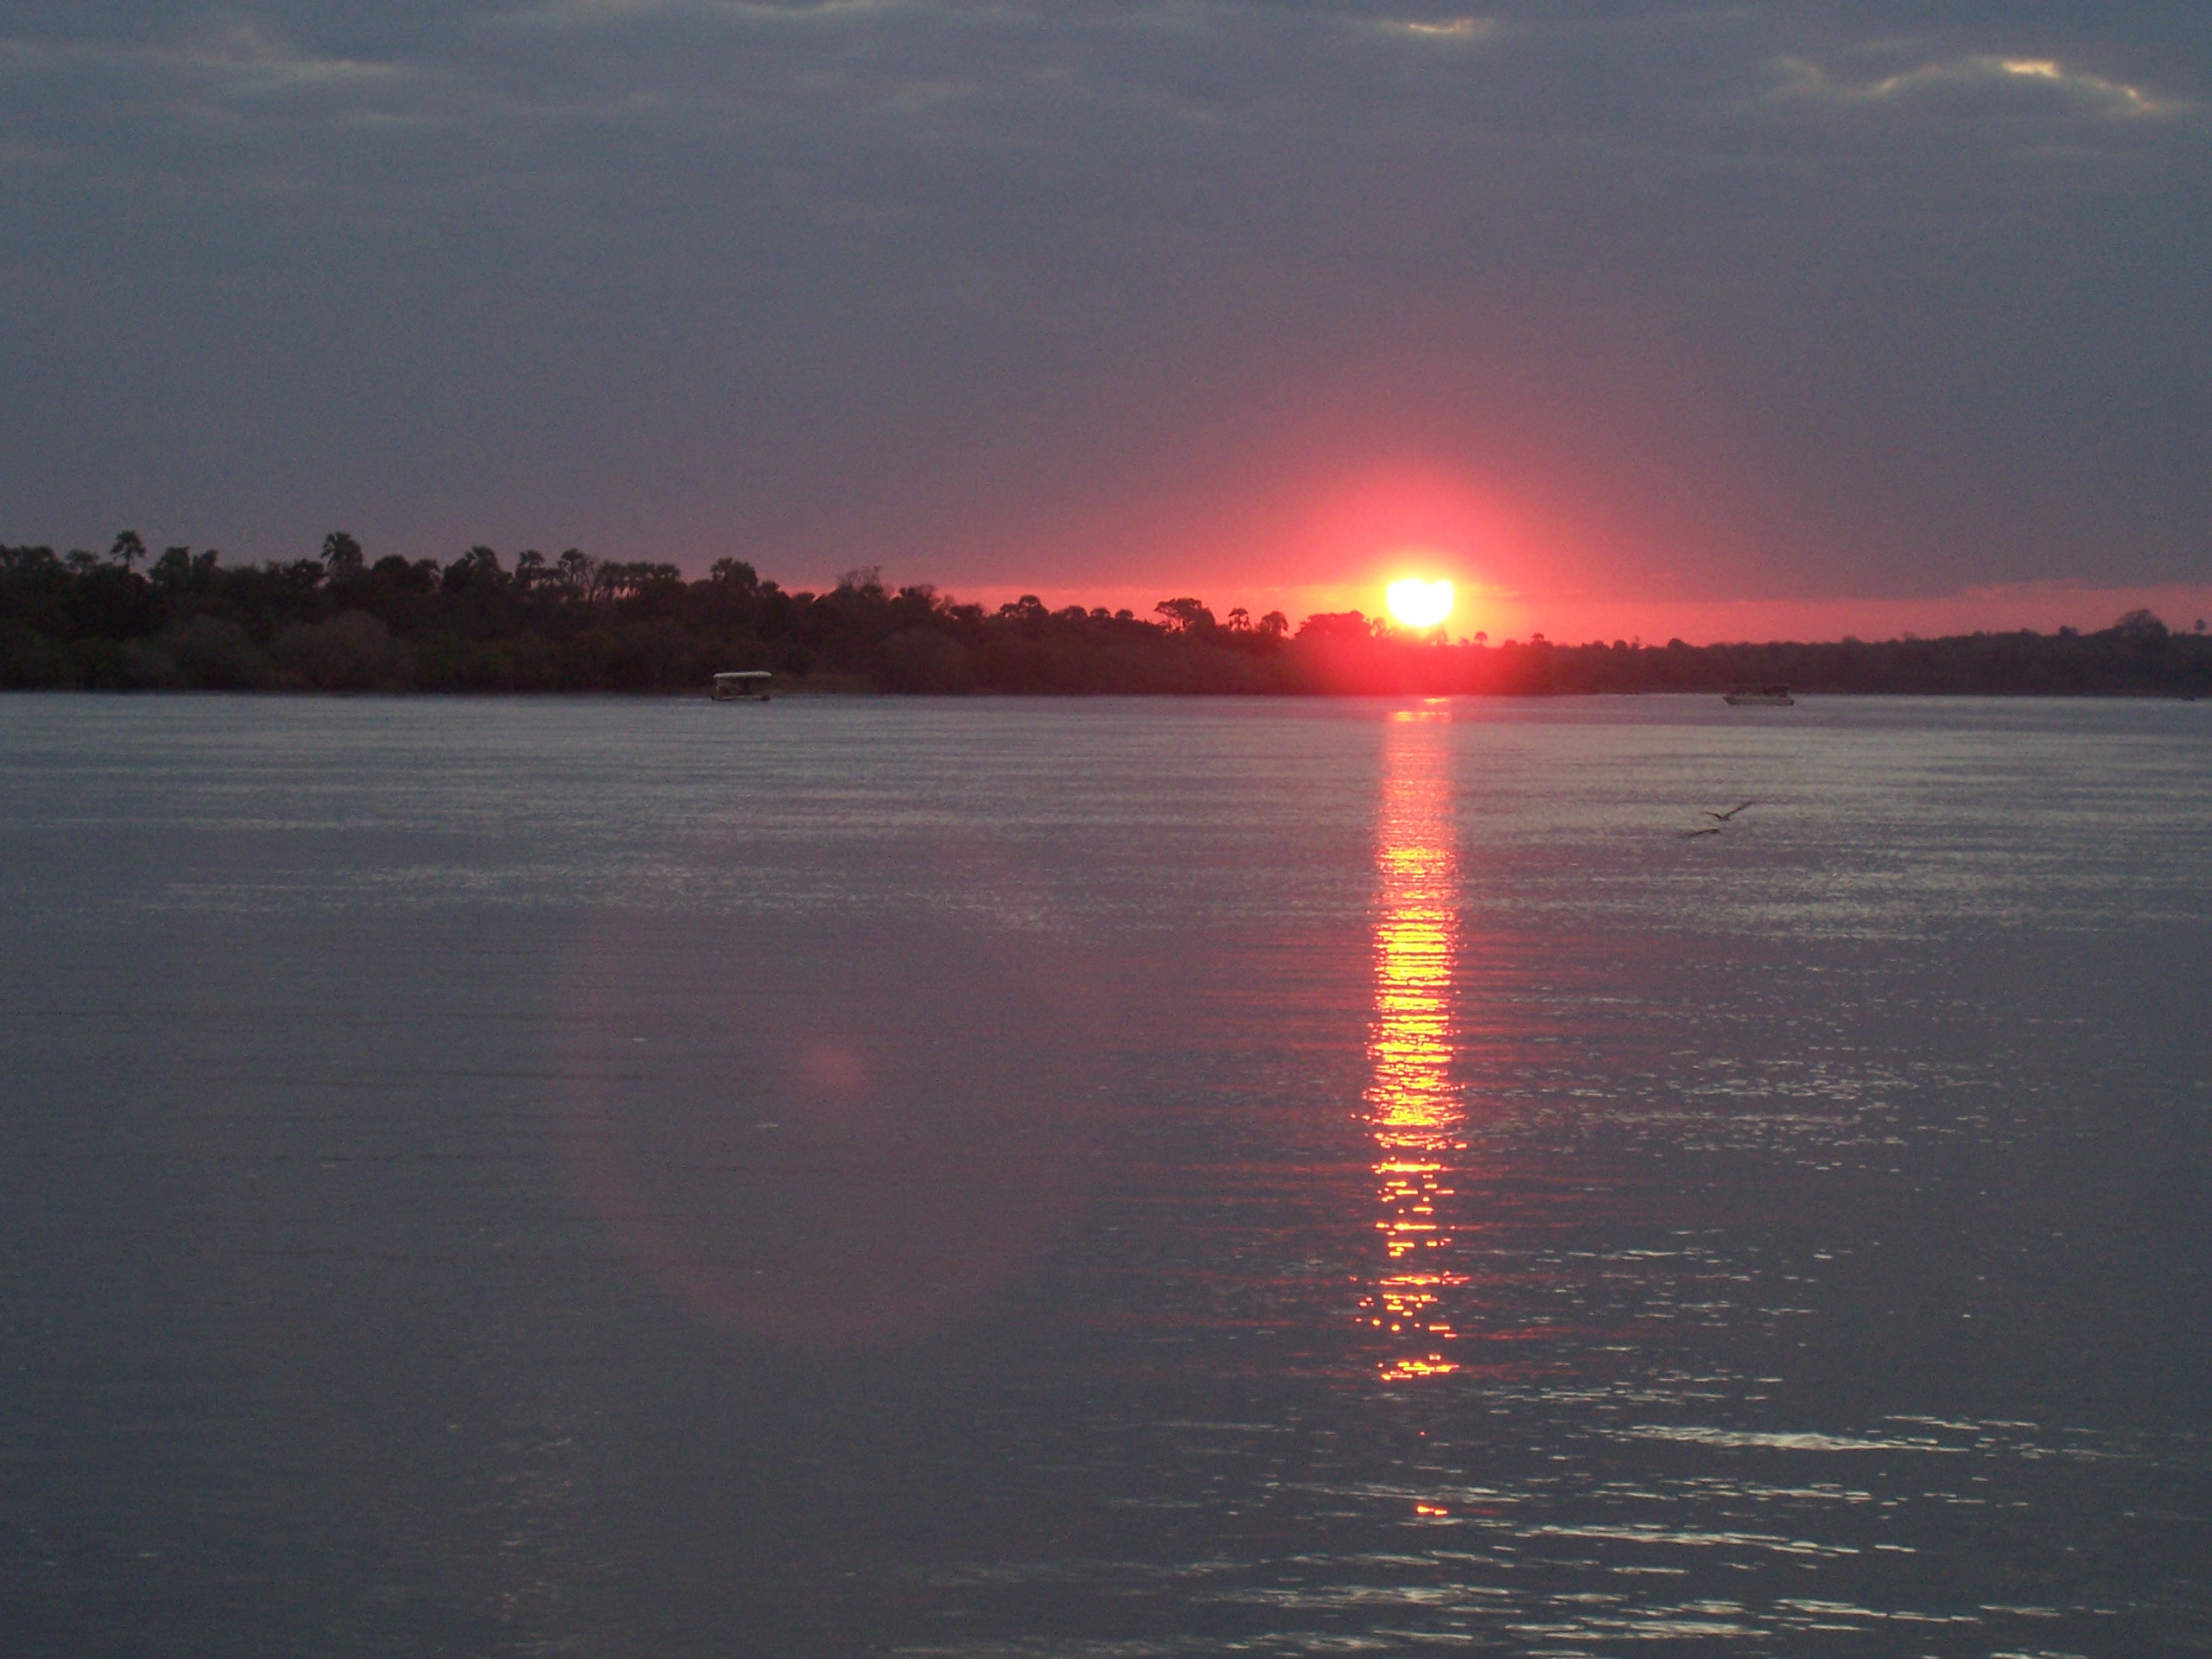 Zambezi river, sunset